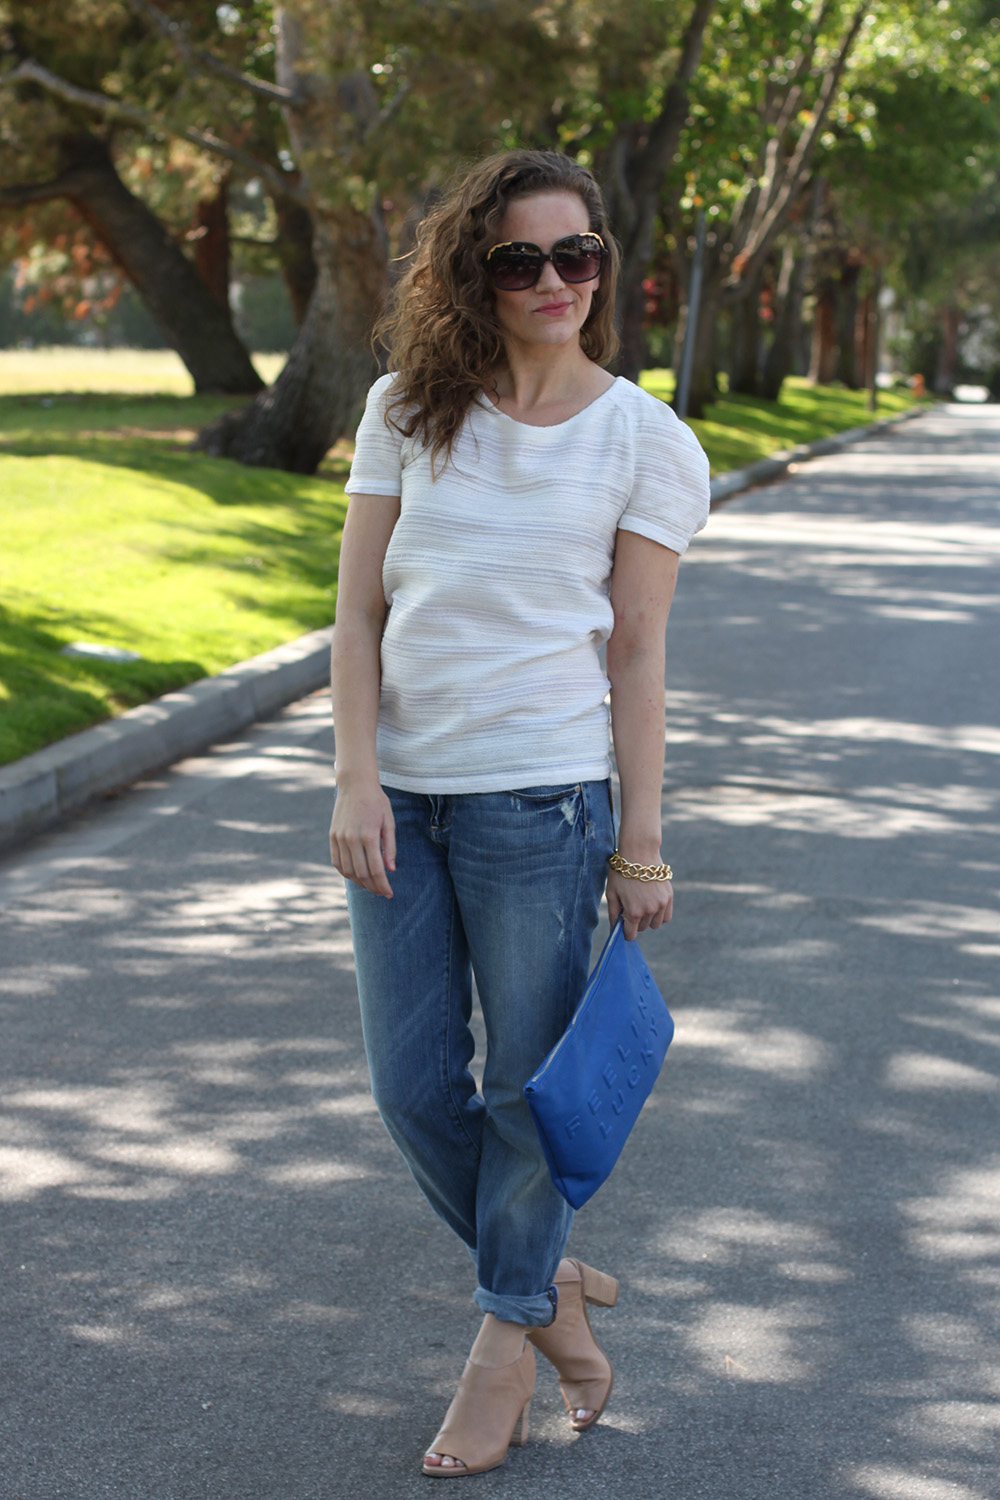 Easy casual look: structured top with distressed denim and booties on undeniable style san francisco blog.